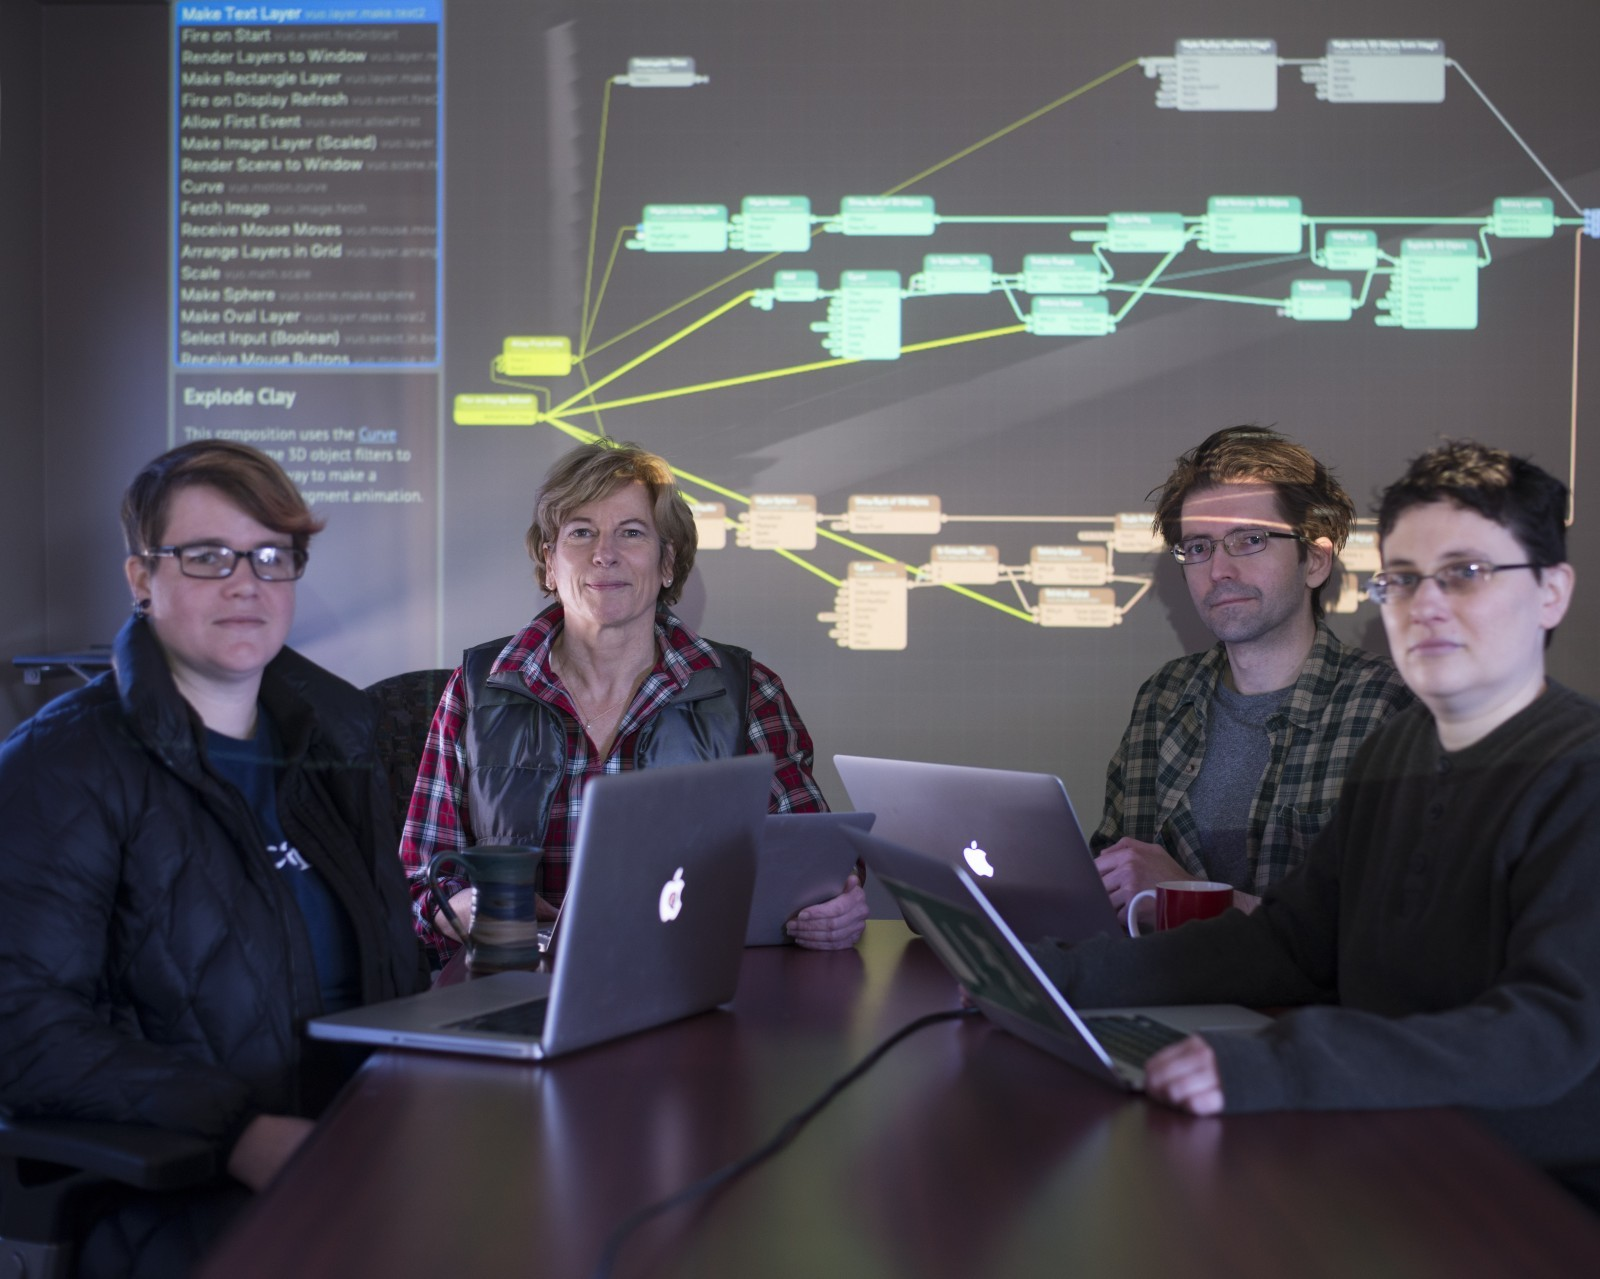 Members of Team Vuo seated with laptops in front of a projector screen showing the Vuo editor